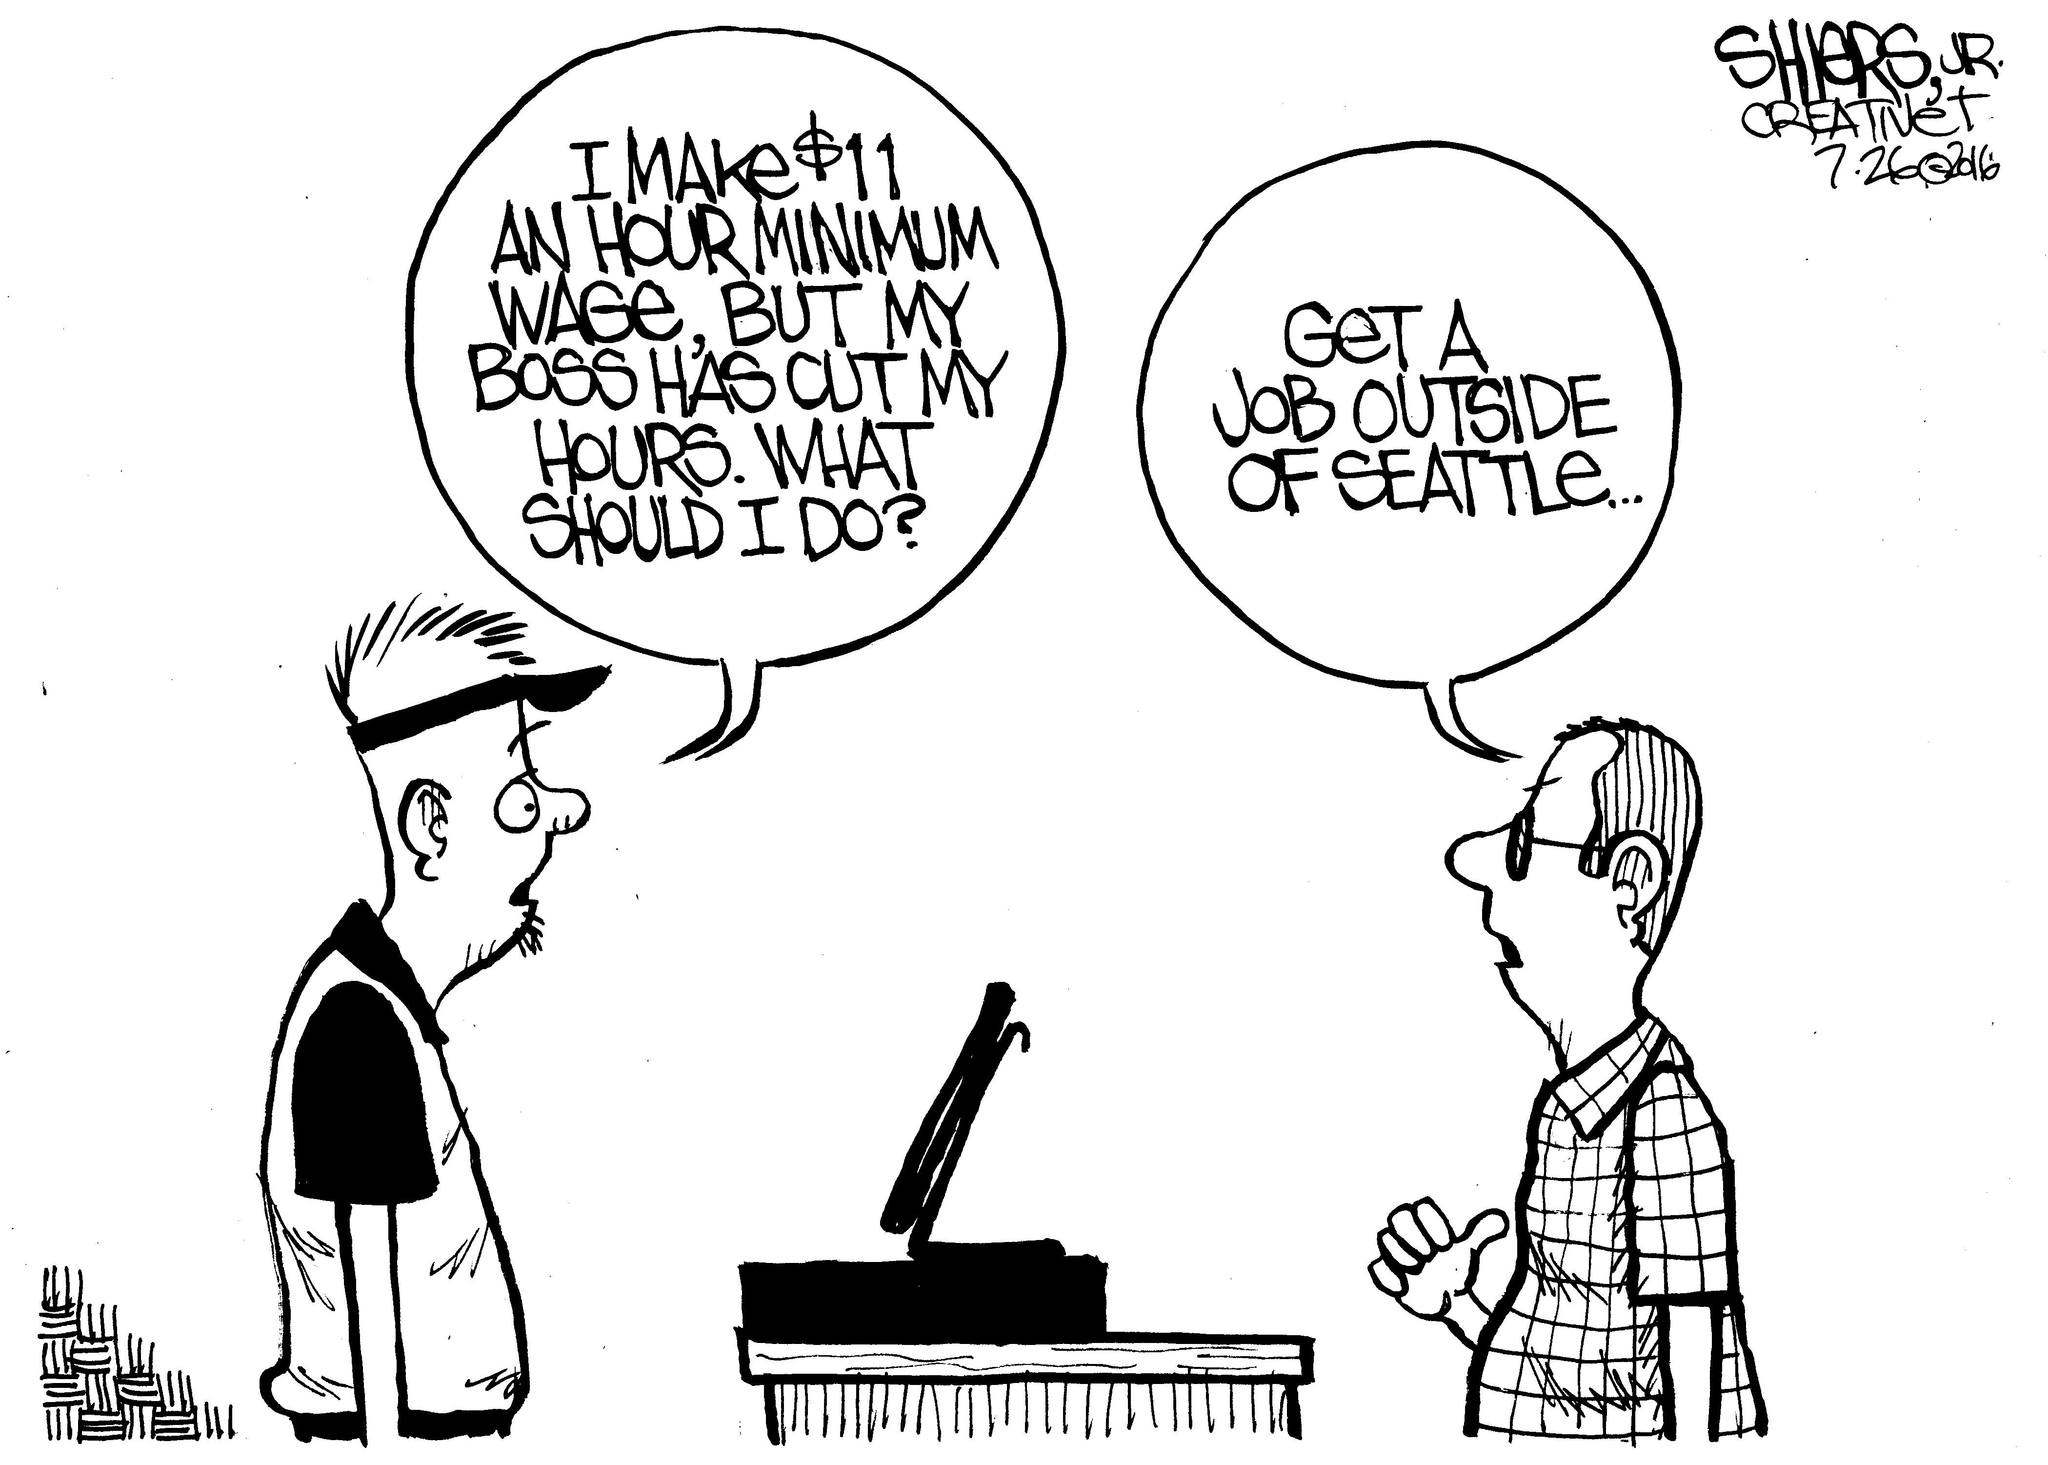 Get A Job Outside Of Seattle